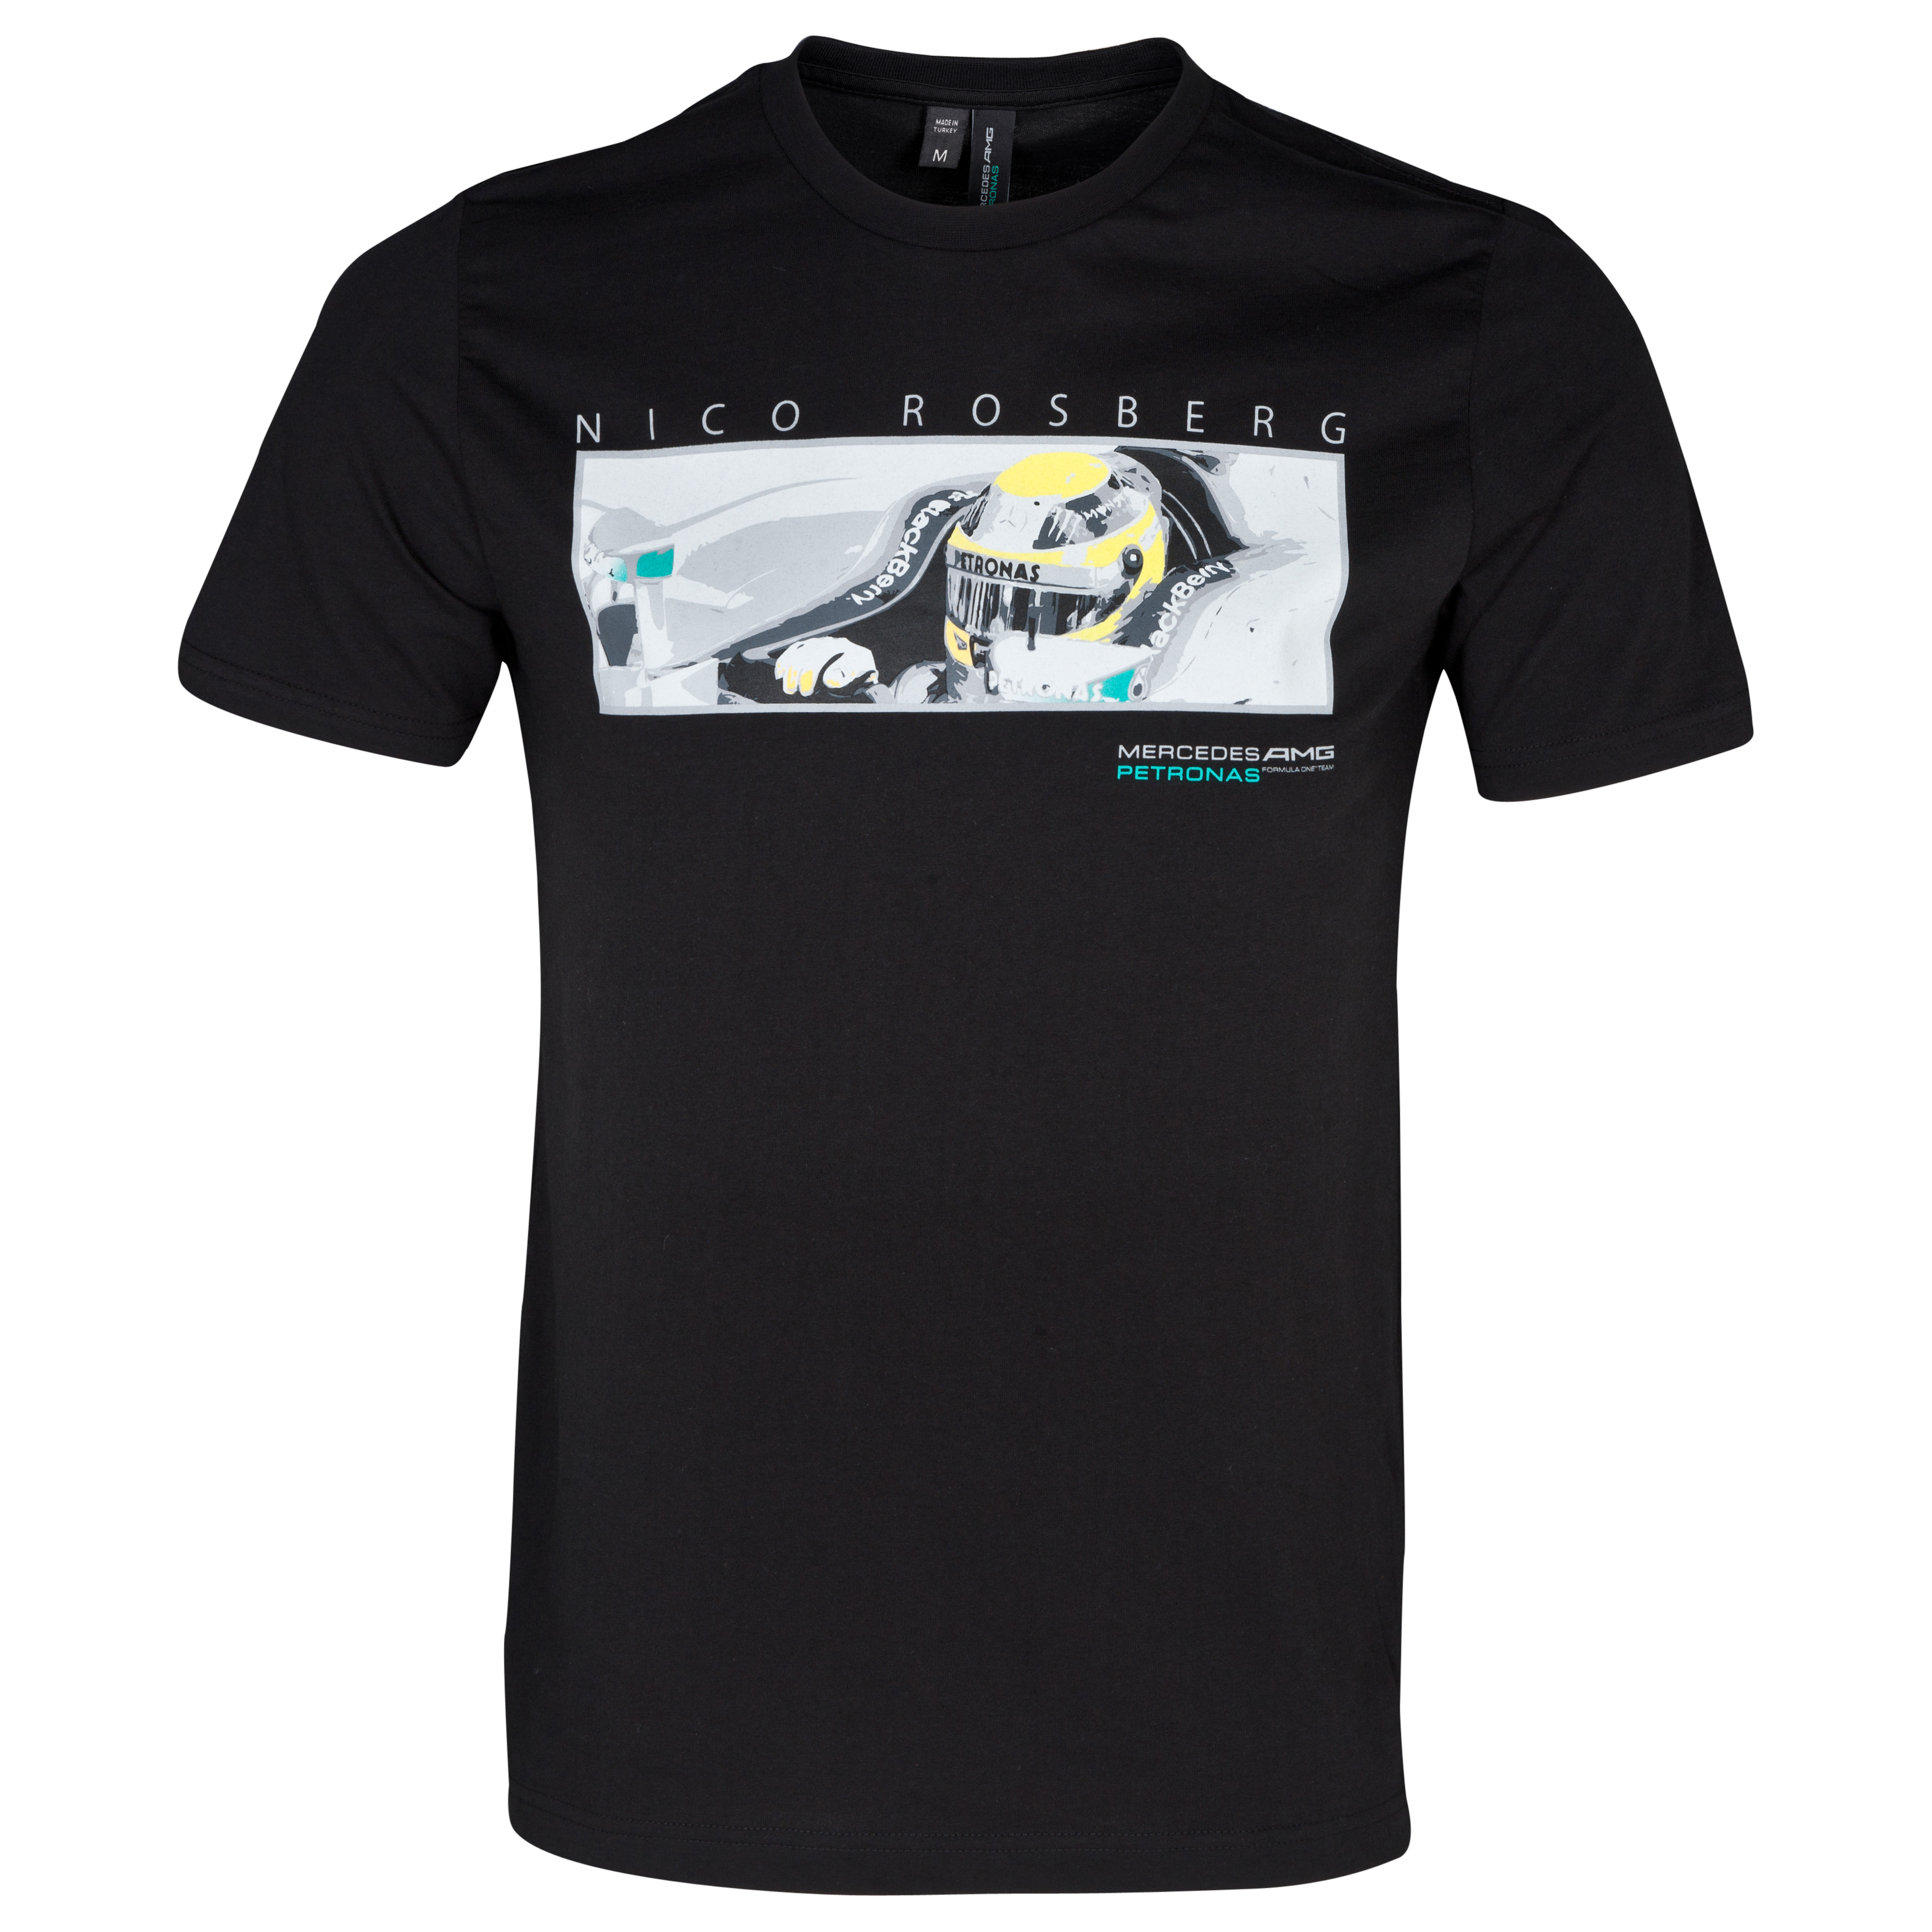 Mercedes AMG Petronas Nico Car T-Shirt Black